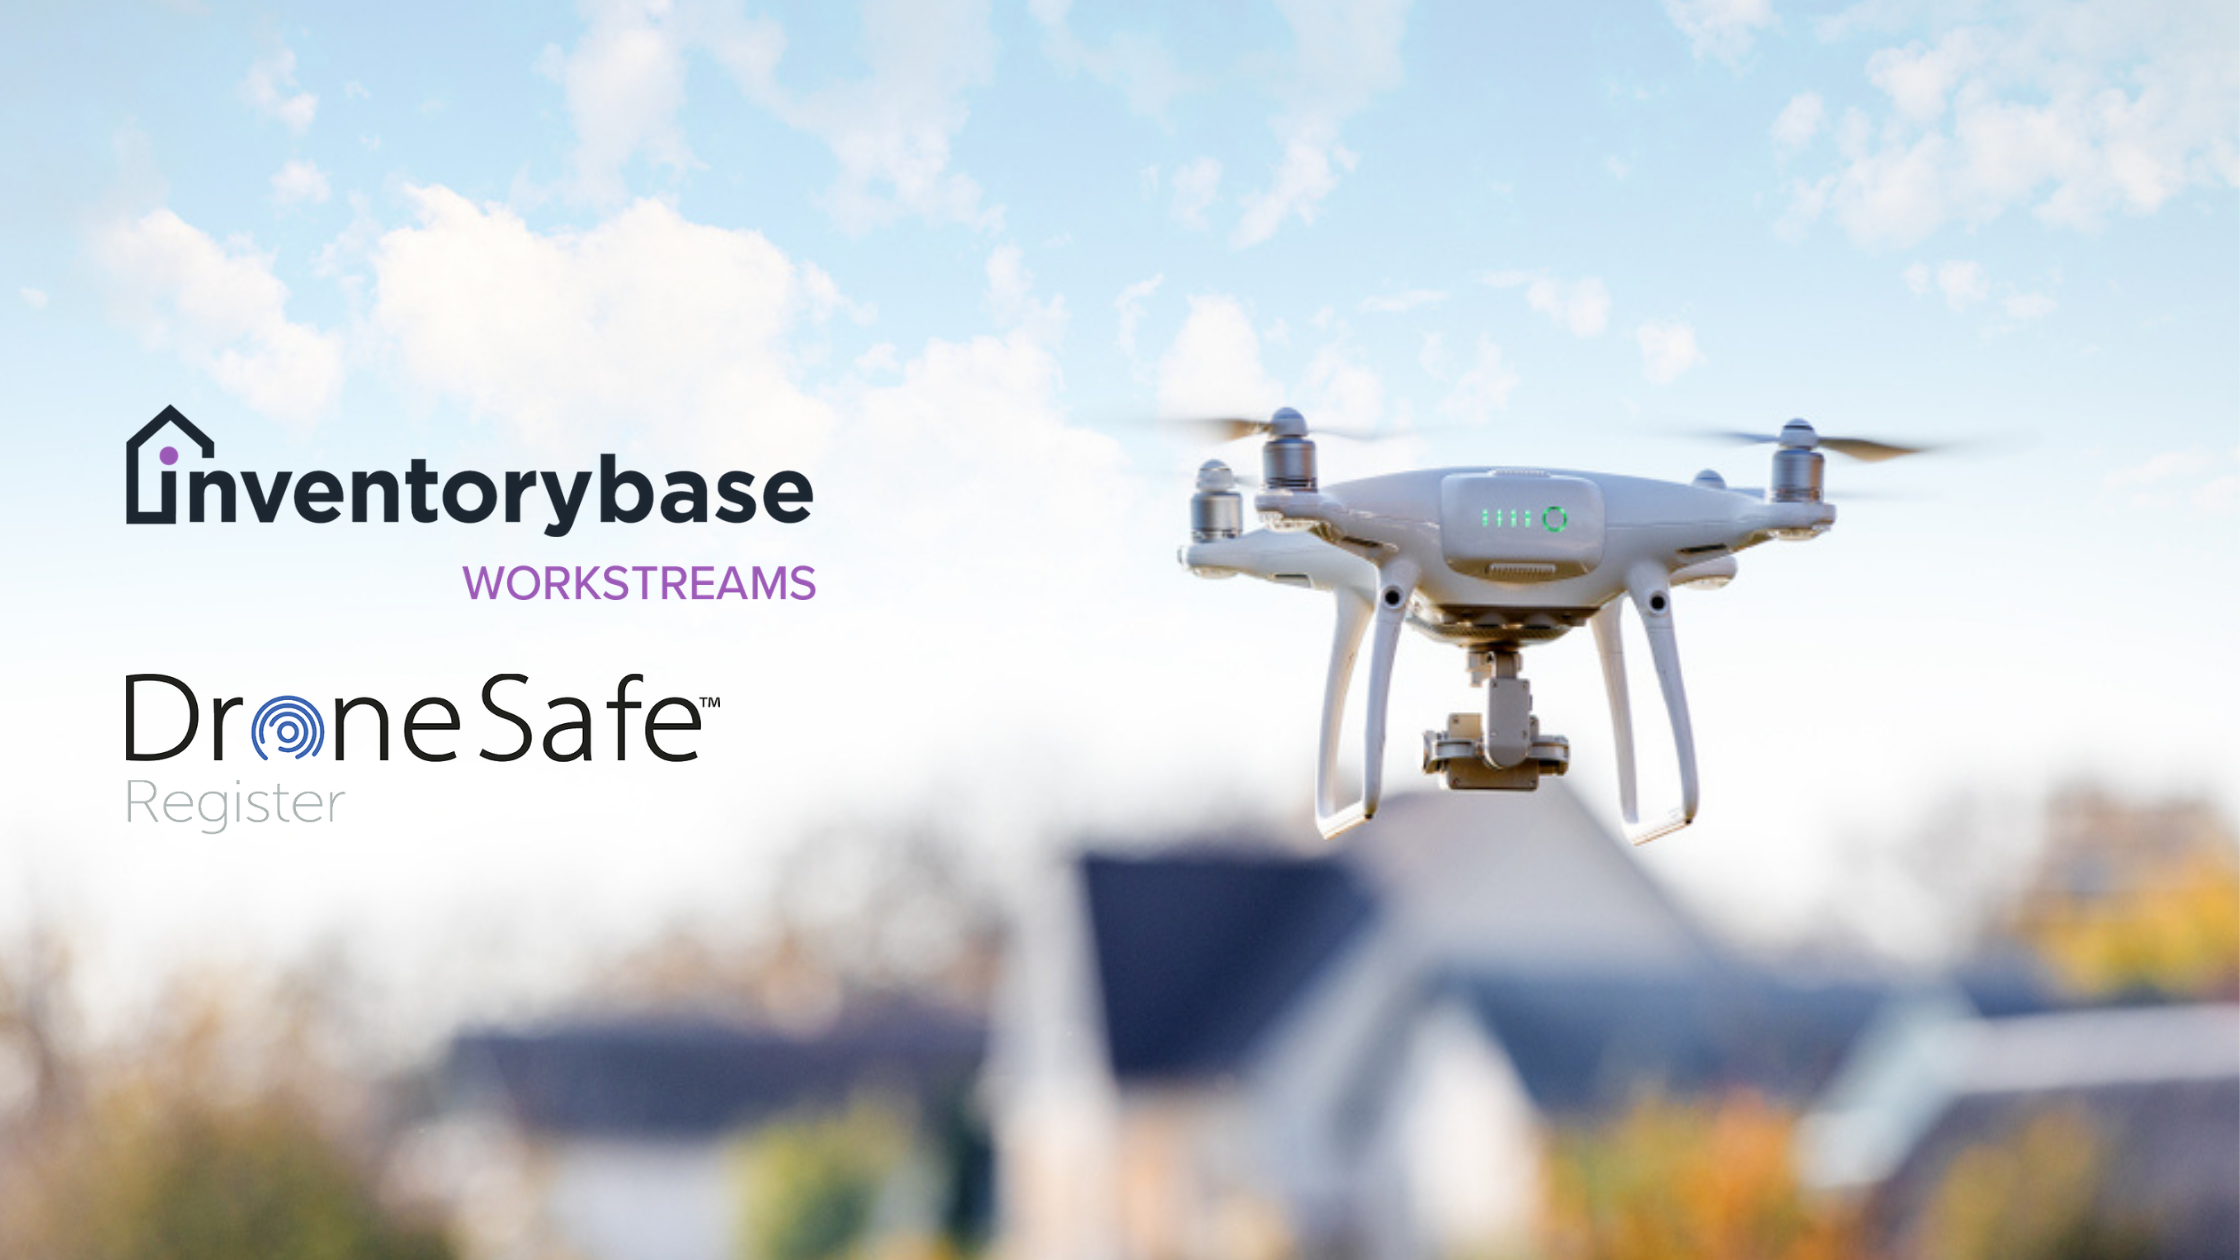 InventoryBase launches Drone on-demand inspections via InventoryBase Workstreams